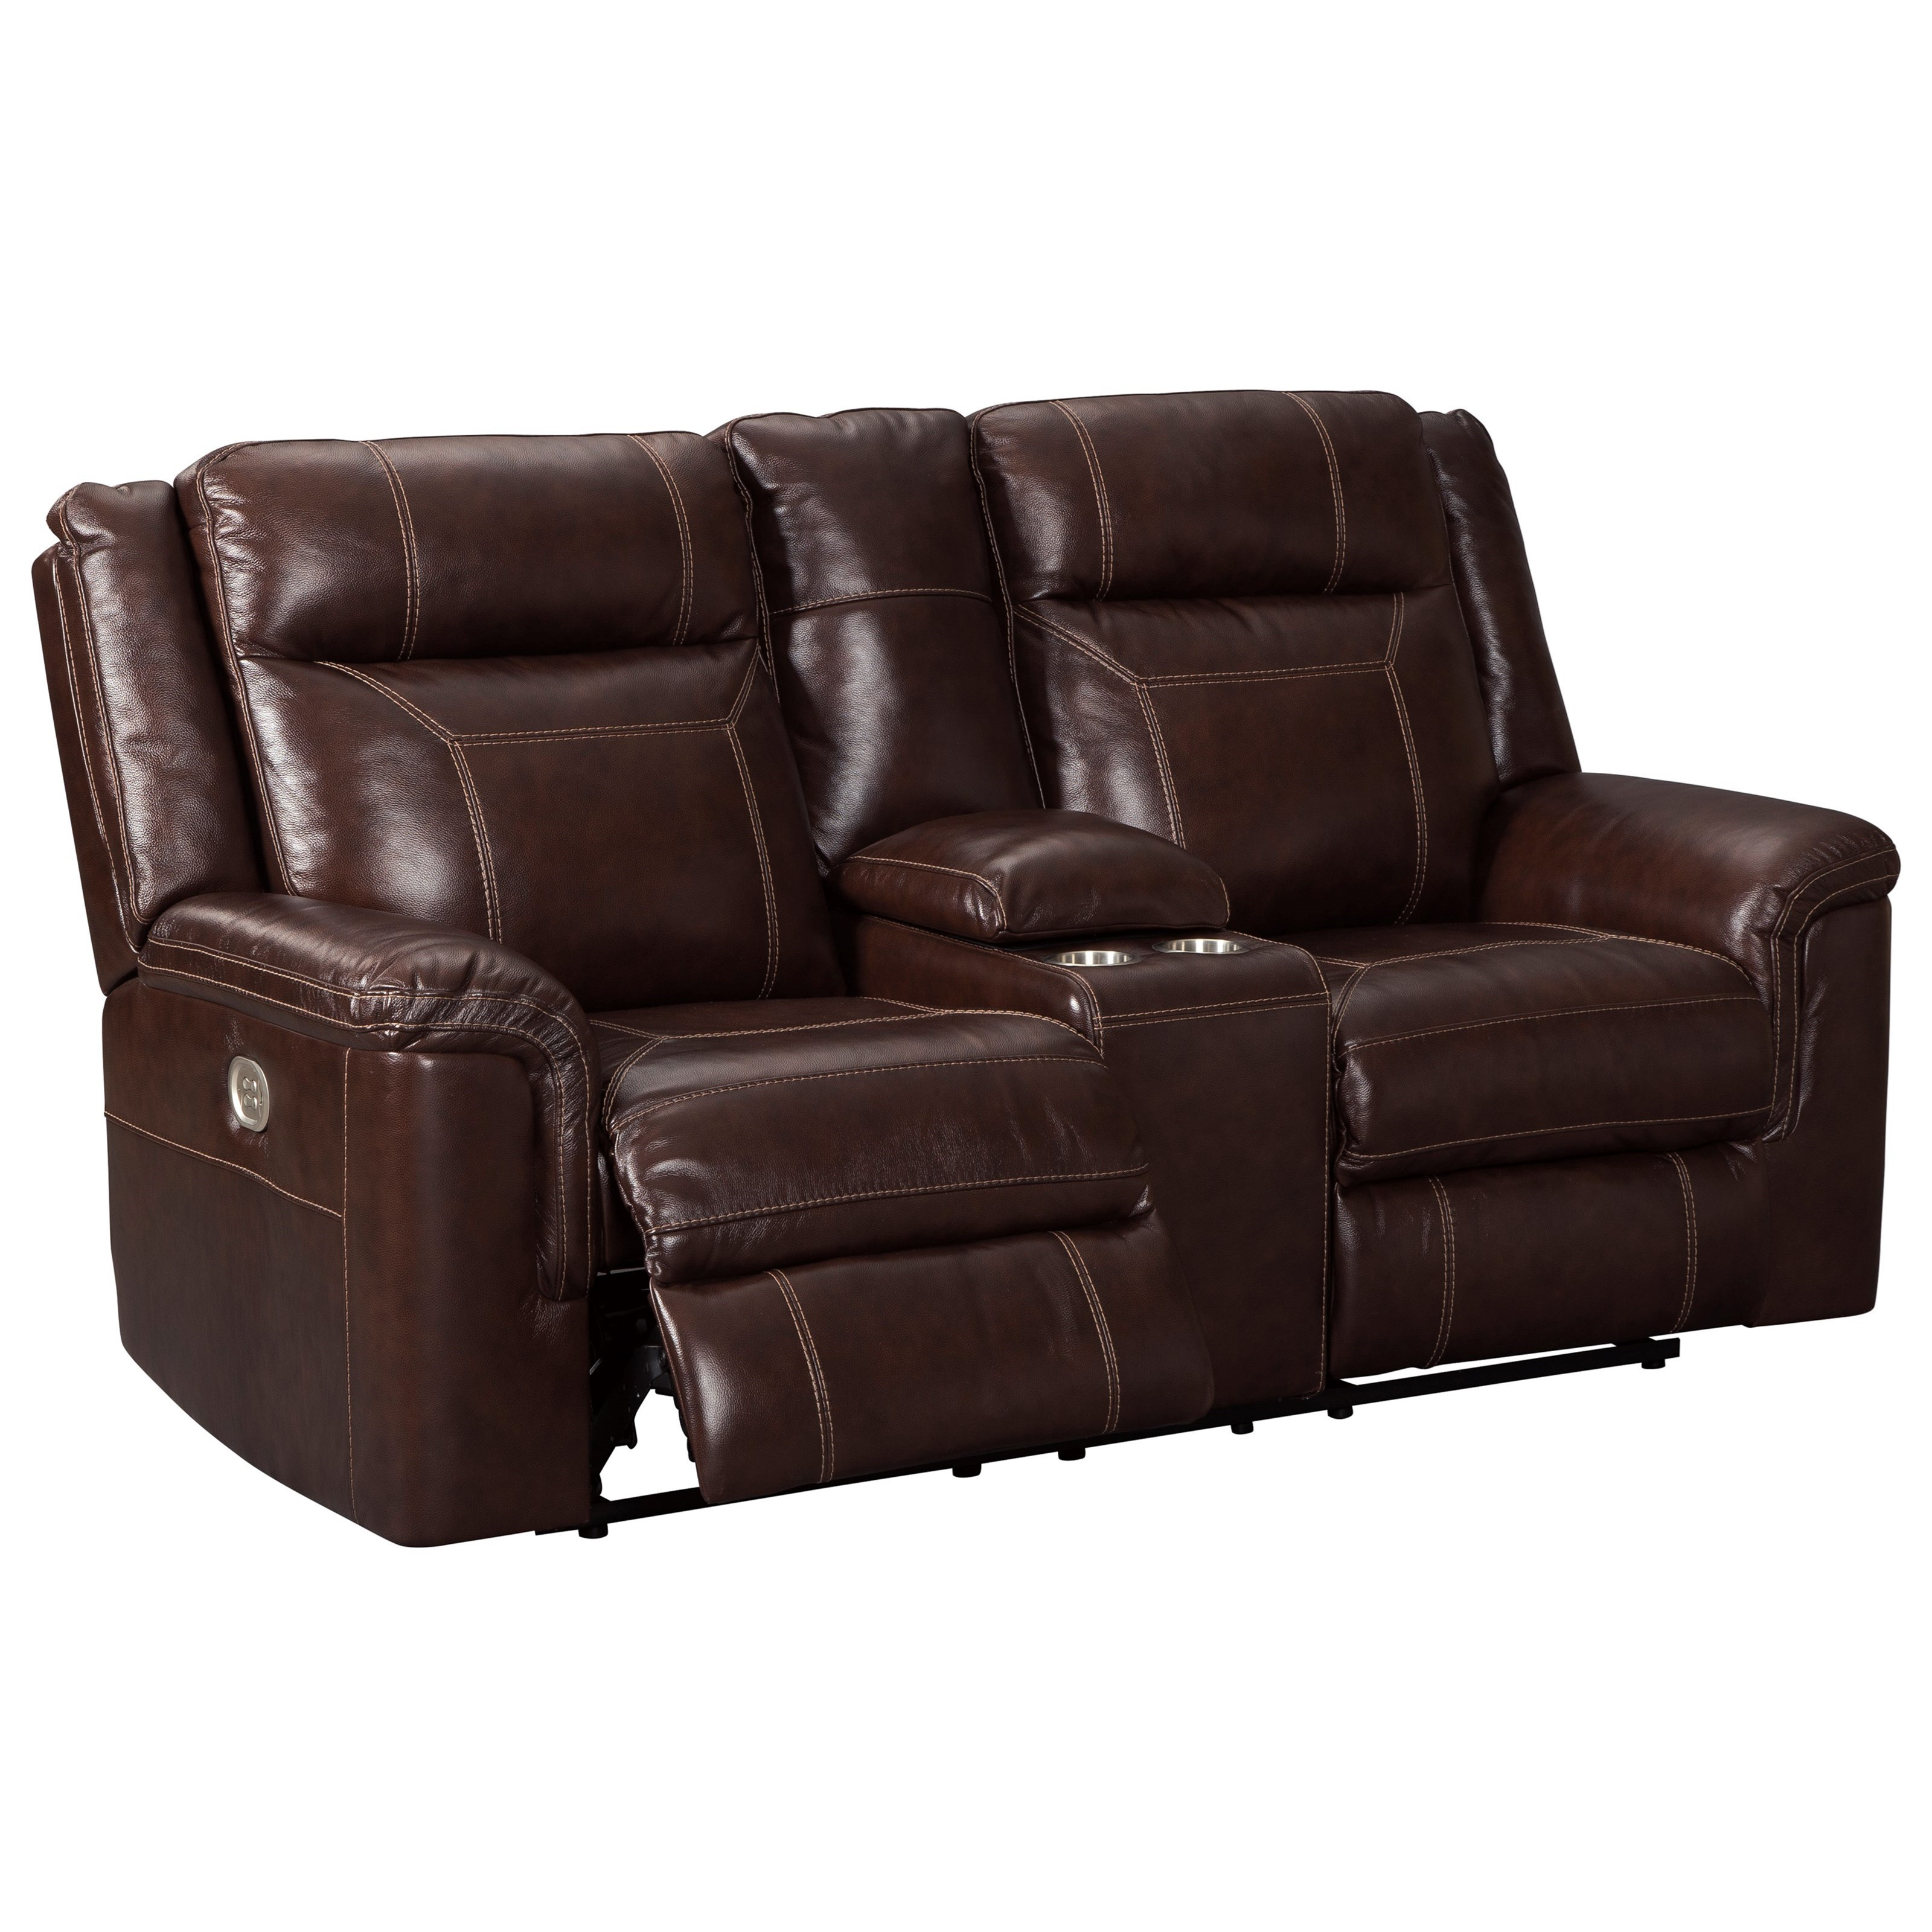 Power Reclining Loveseat With Adjustable Headrest And